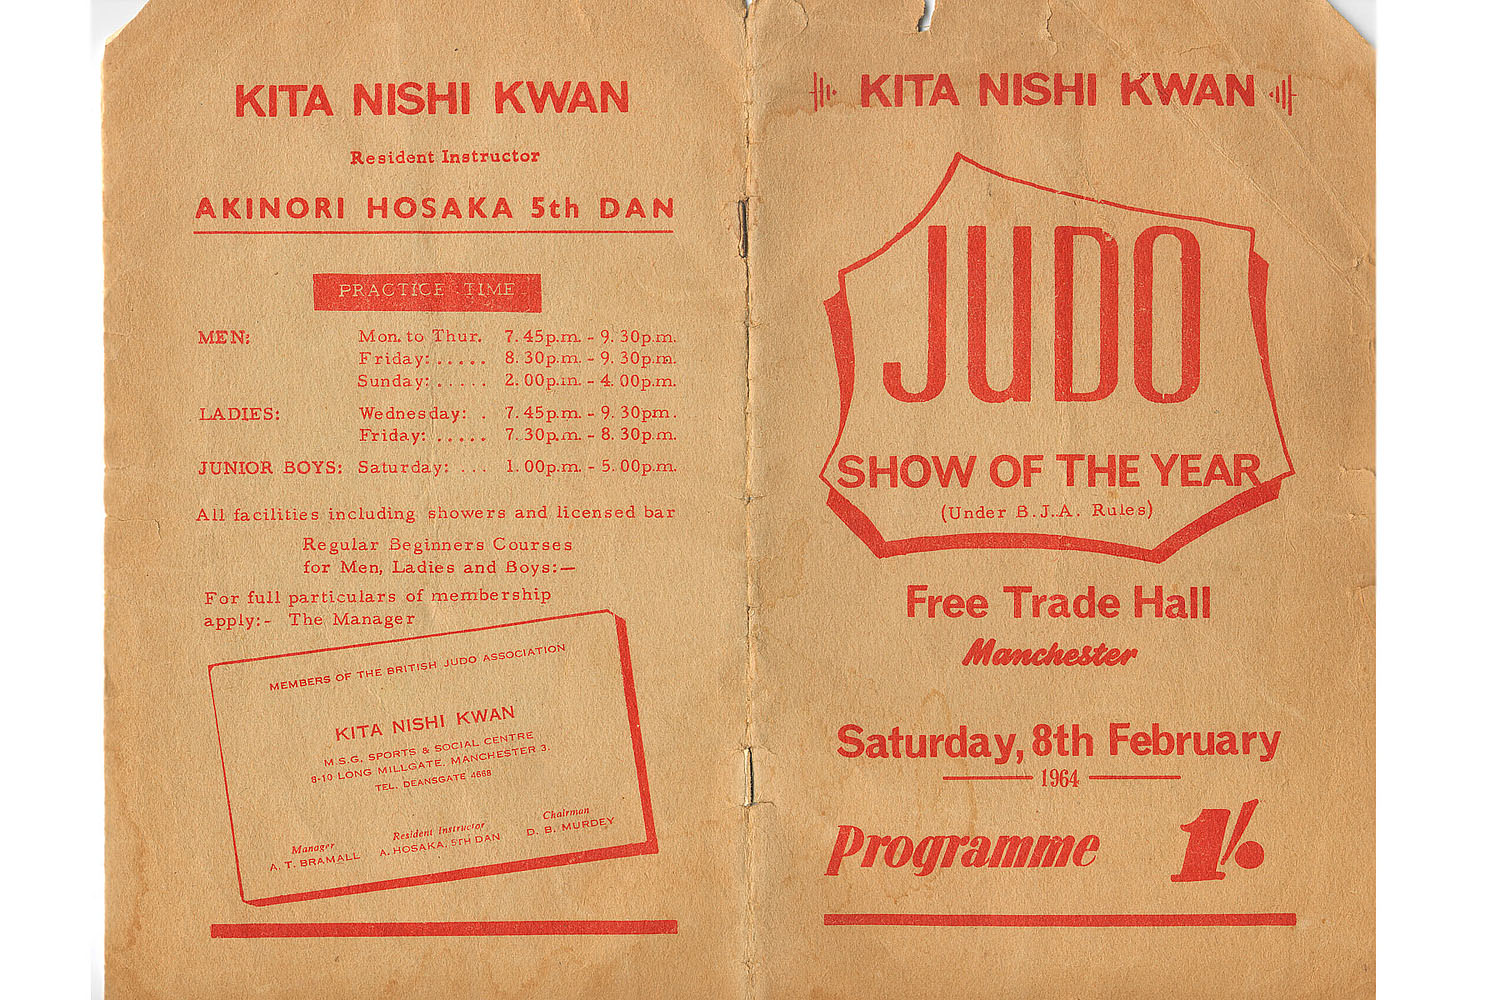 Kita Nishi Kwan - Northwest Judo School show at the Free Tarde Hall, Manchester 1964